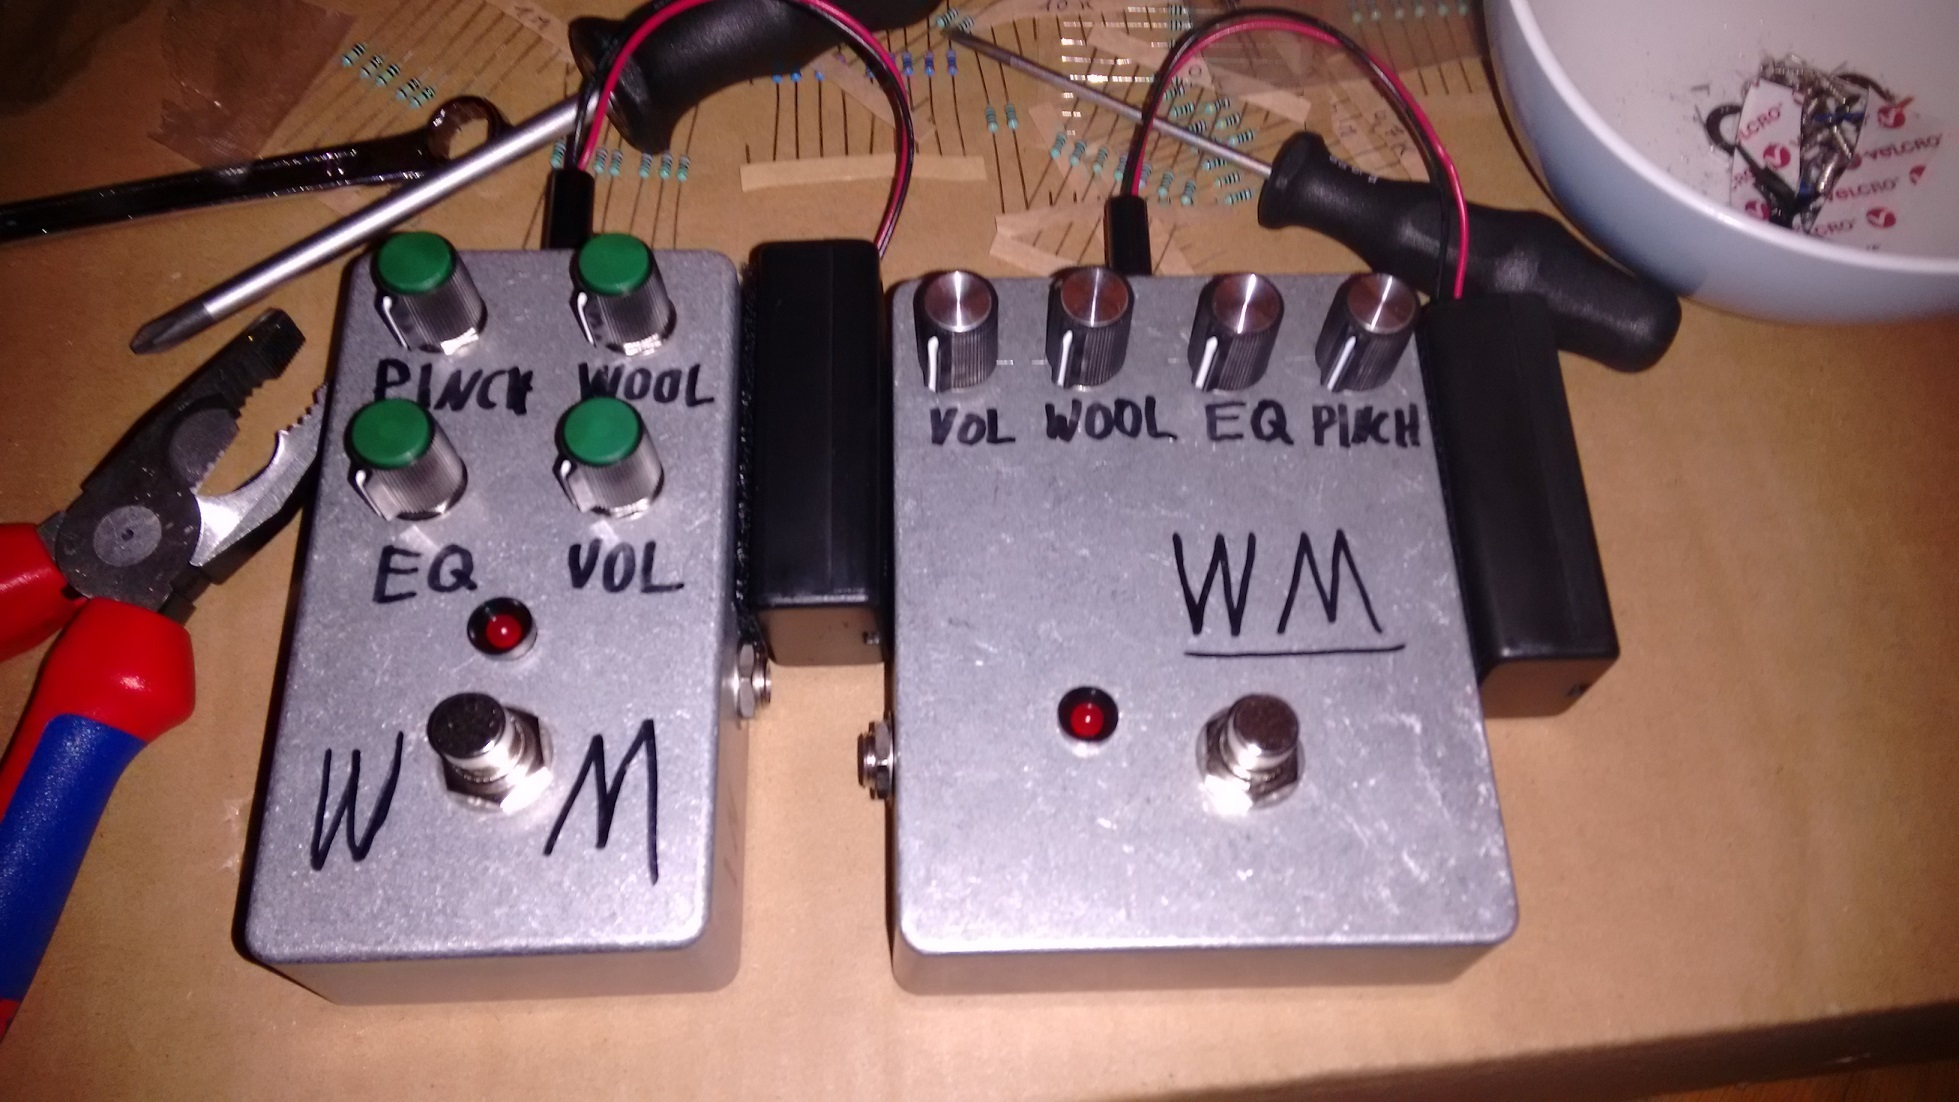 Building My Own Effect Pedals For Guitar Bass Science Re Vero Wah Circuit Img 20160420 0101201641959x1102 460 Kb